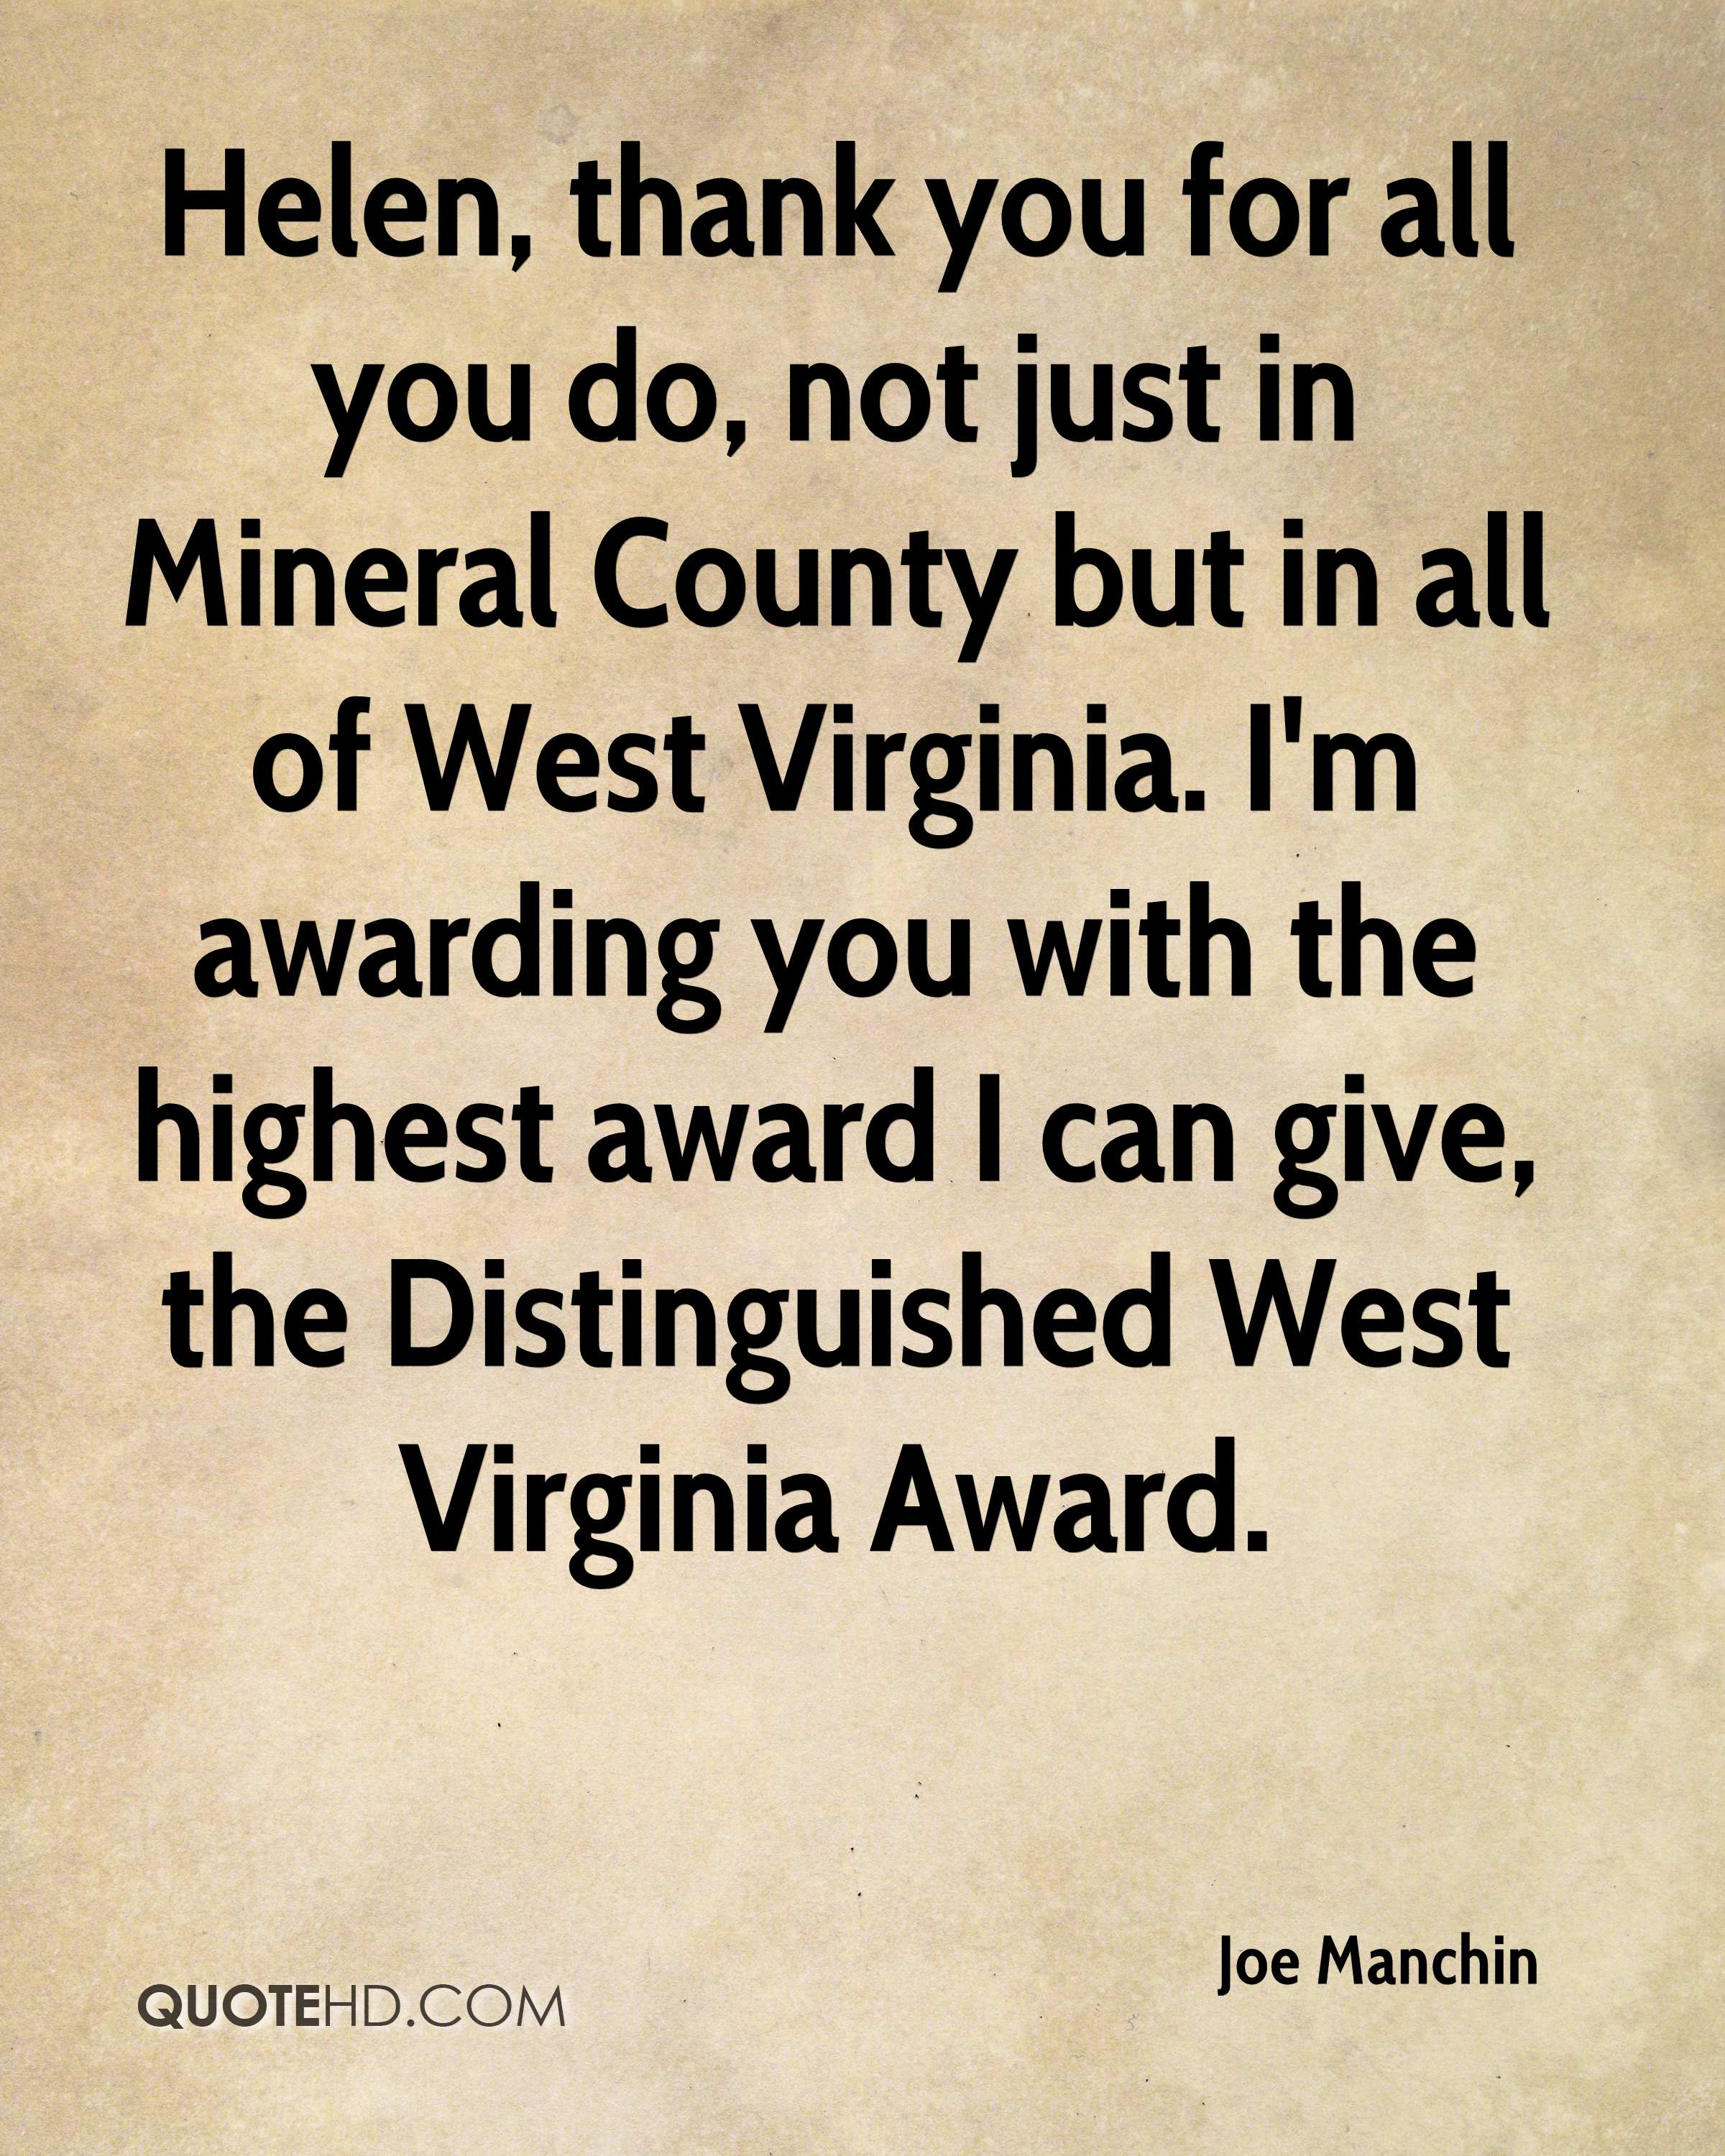 Helen, thank you for all you do, not just in Mineral County but in all of West Virginia. I'm awarding you with the highest award I can give, the Distinguished West Virginia Award.